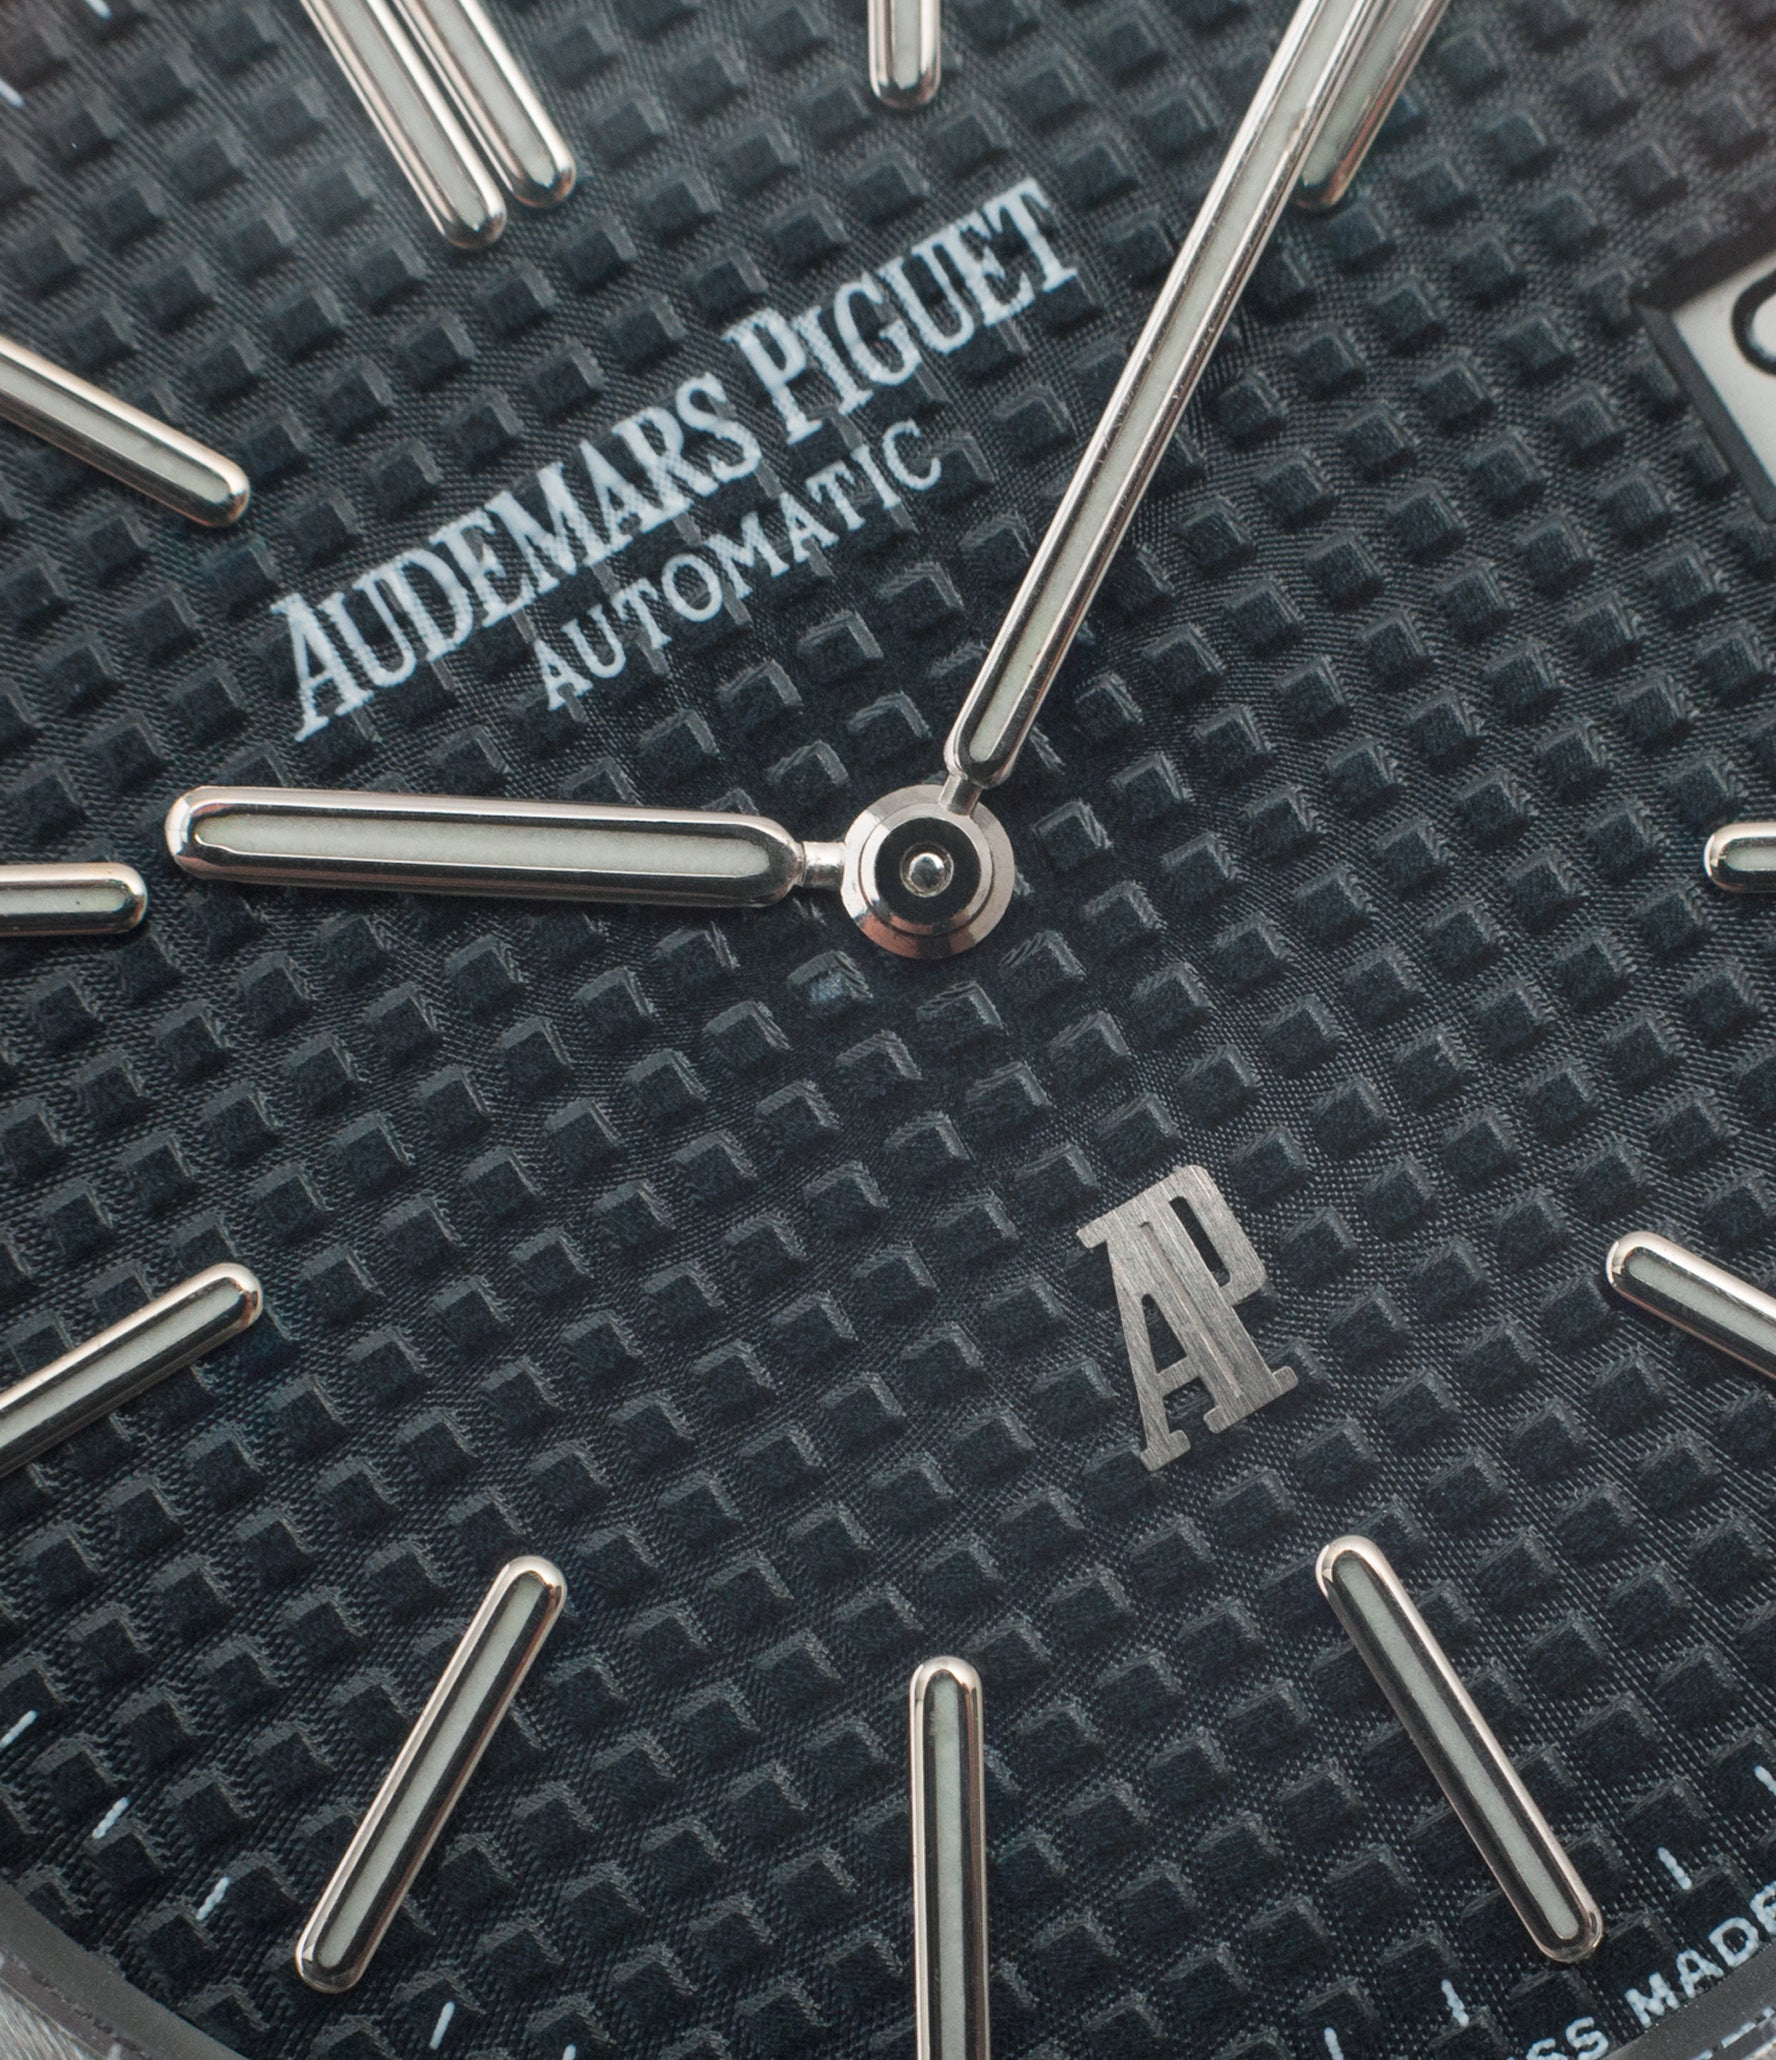 rare replacement dial Audemars Piguet 5402 Royal Oak A series steel rare sport watch online at A Collected Man London UK vintage watch specialist